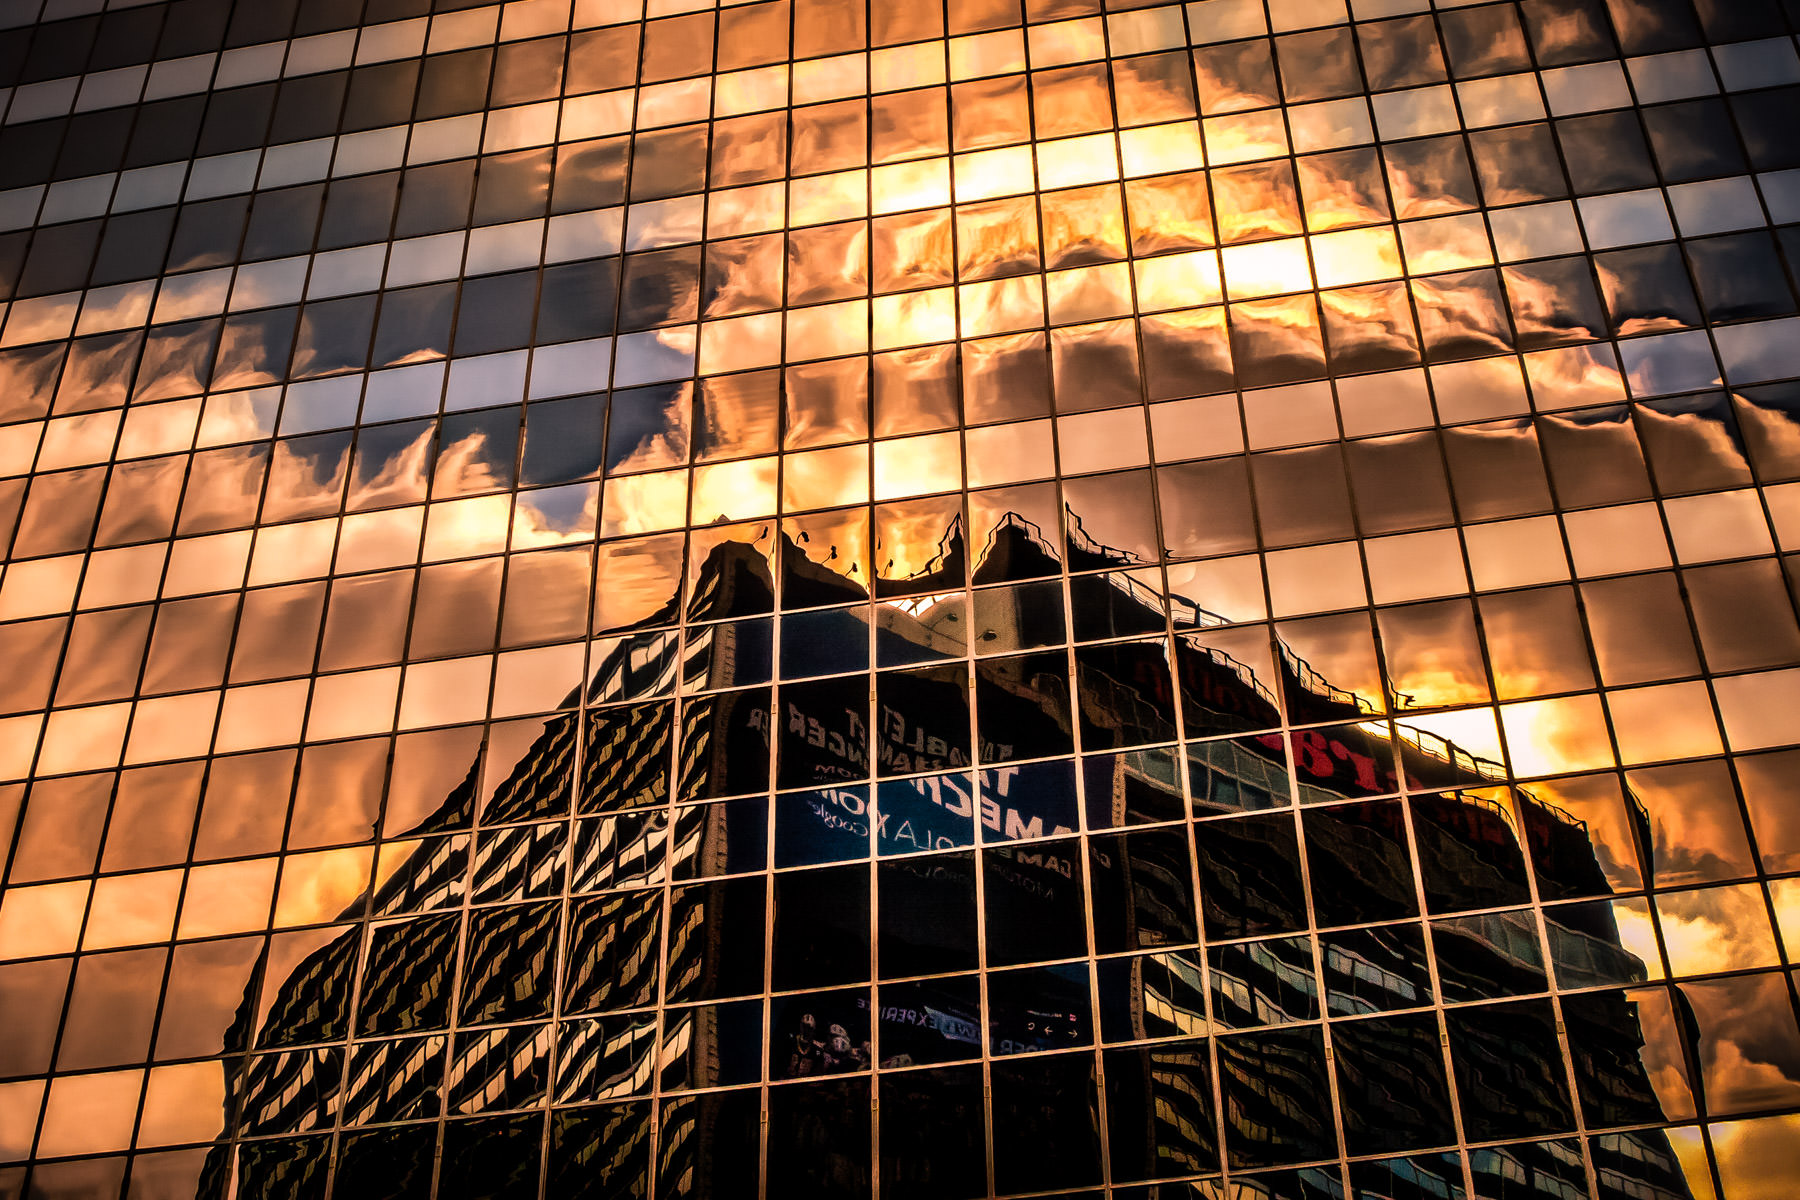 The Sheraton Hotel in Downtown Dallas is reflected—along with the afternoon sun—in an adjacent building.